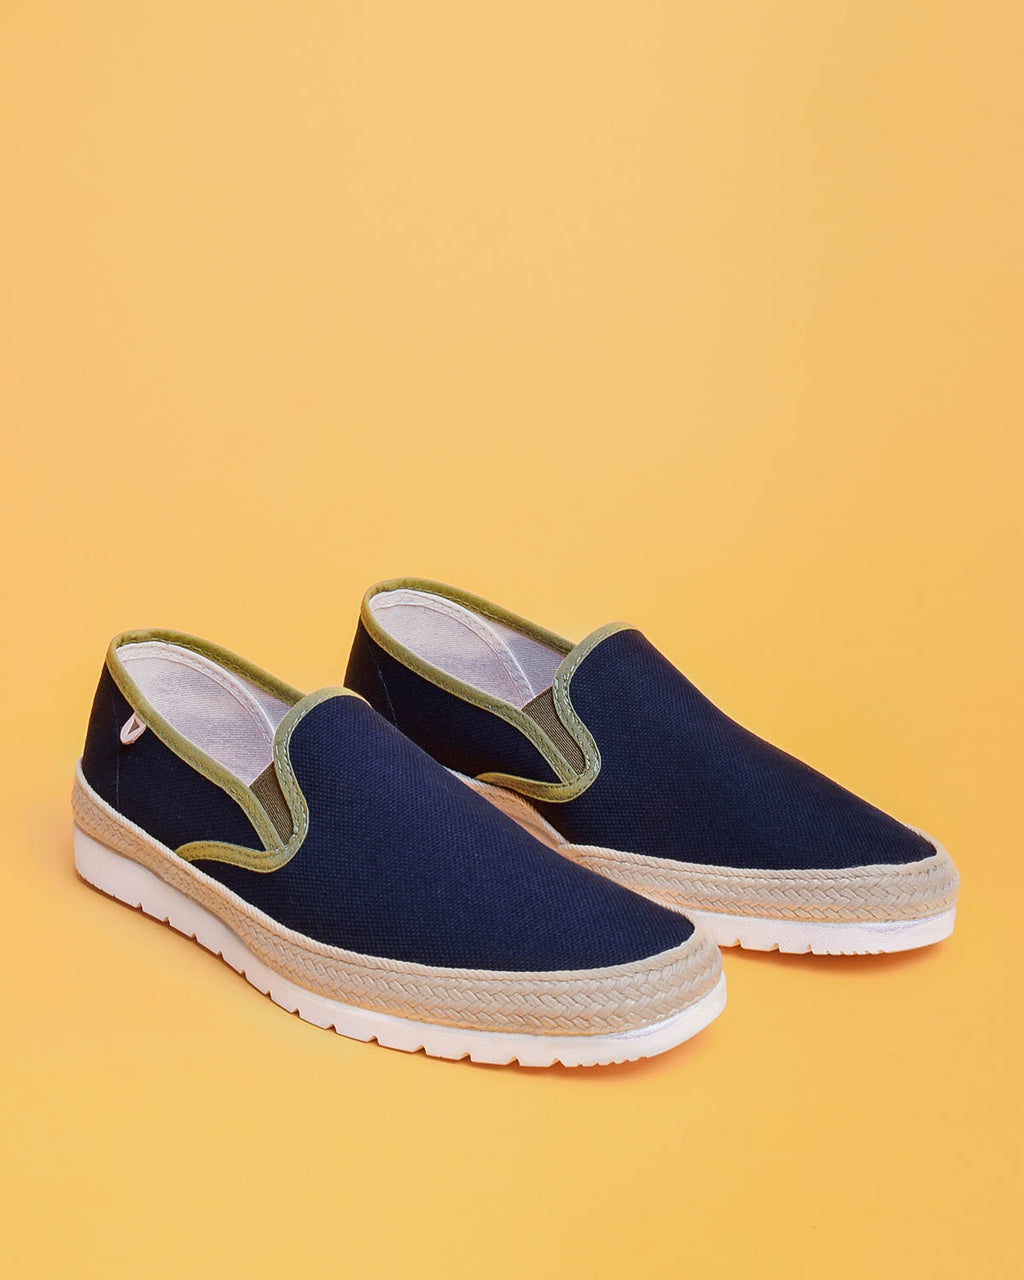 Boris Paris Canvas Slip On Sneakers - Navy / Khaki